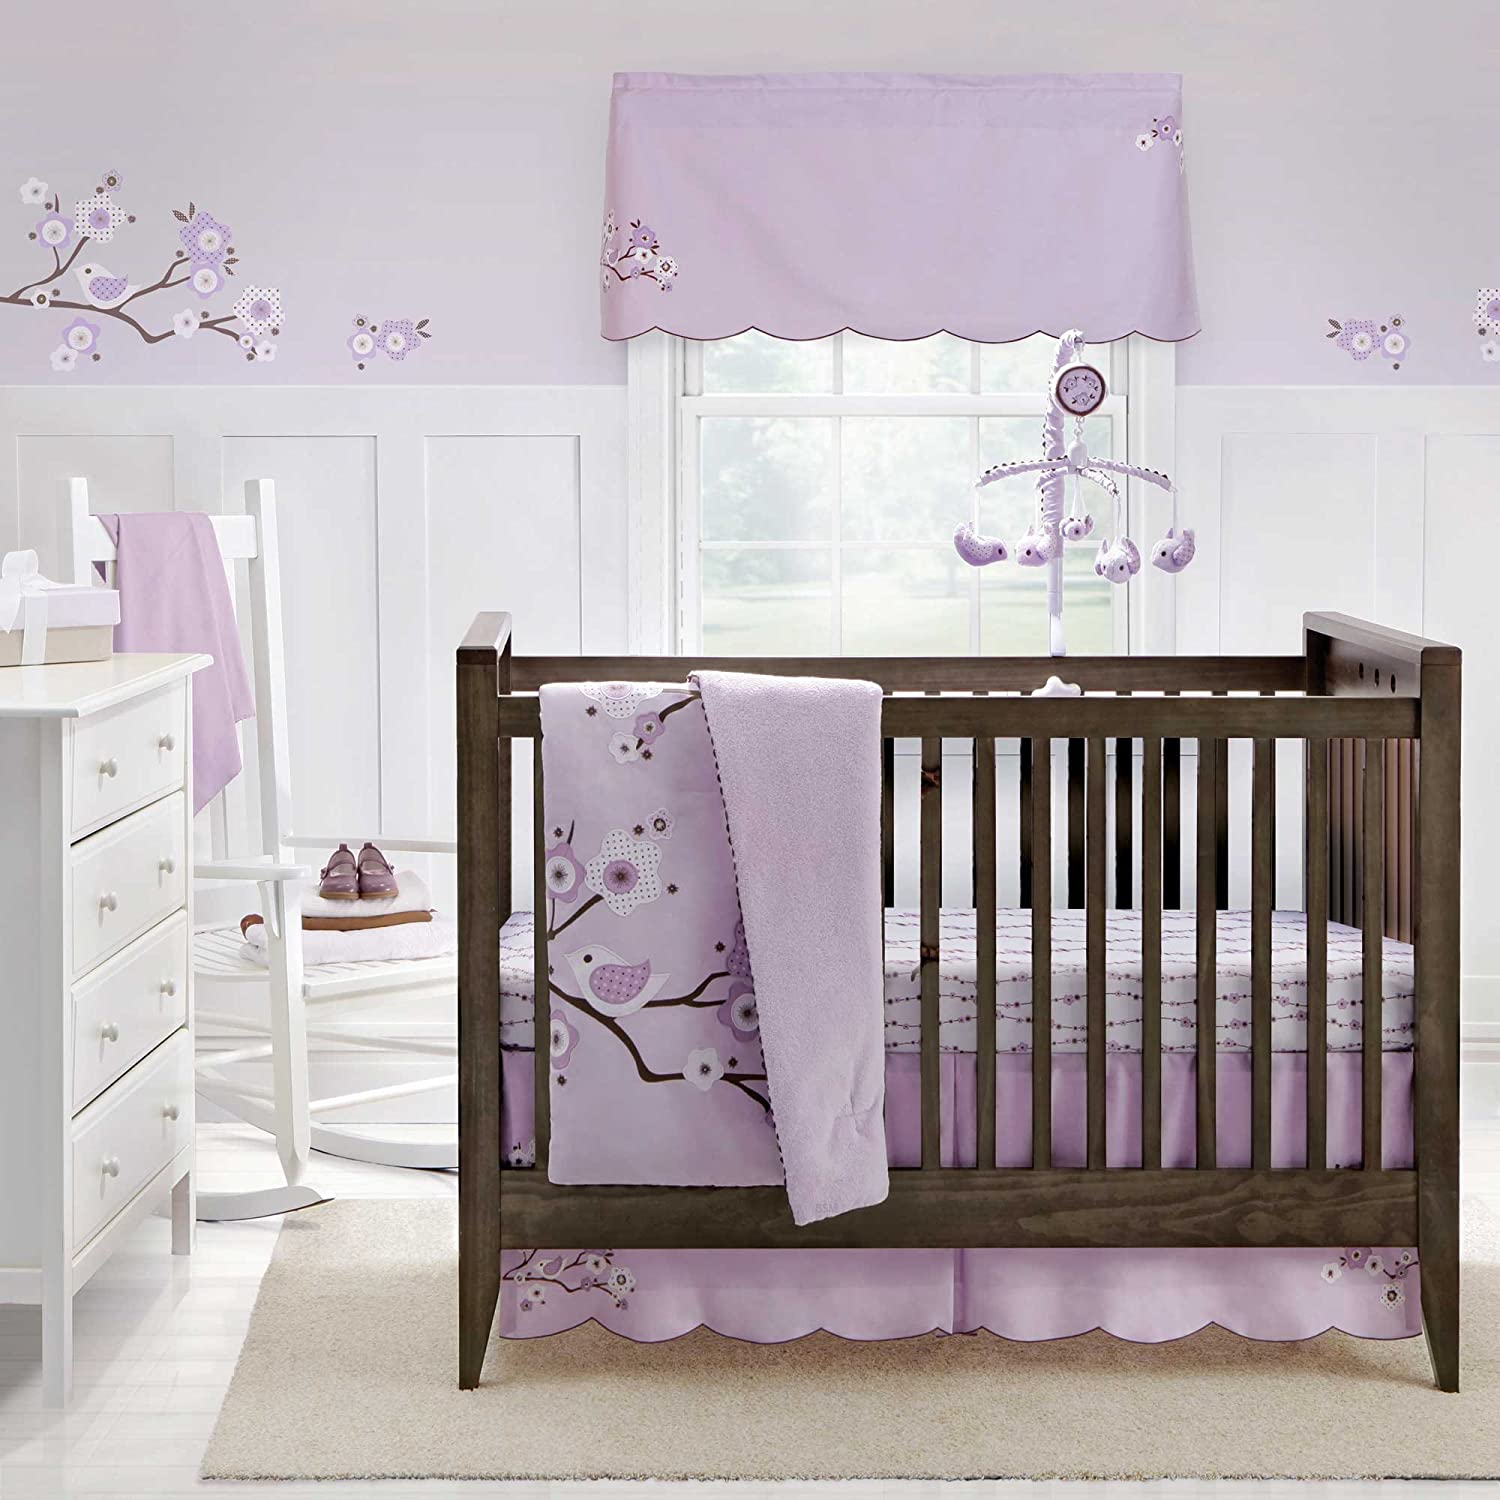 migi lilac blossom crib bedding baby bedding and accessories. Black Bedroom Furniture Sets. Home Design Ideas